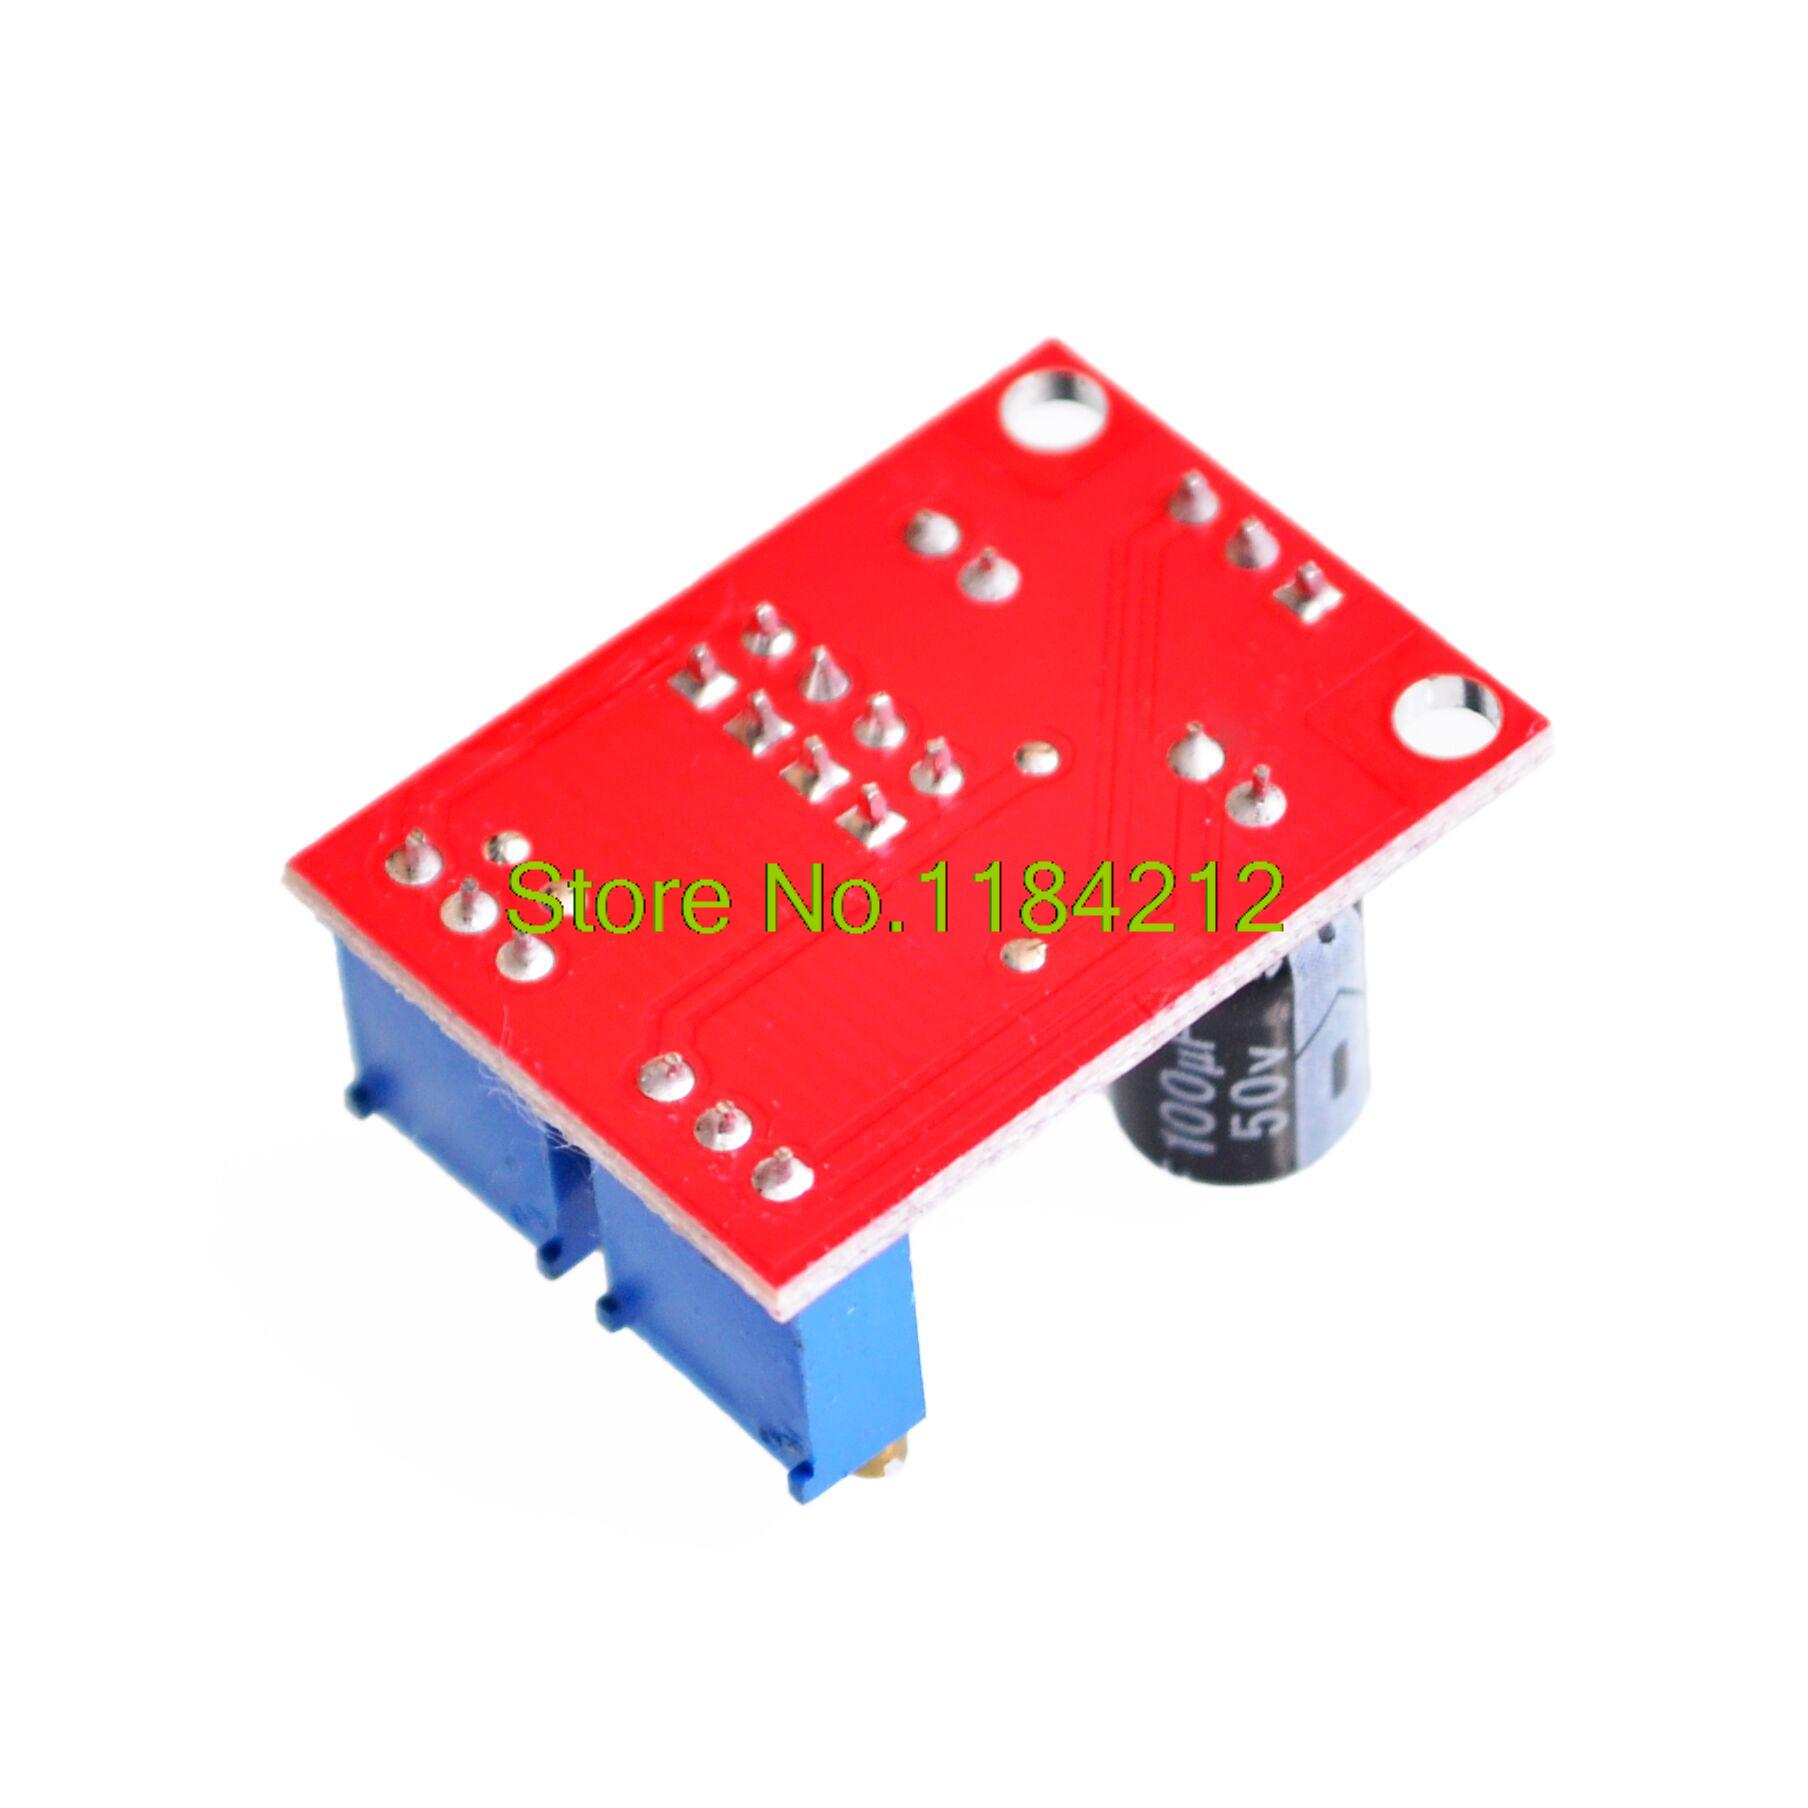 Buy Ne555 Pulse Frequency Duty Cycle Adjustable 555 Timer And Calculator Module Square Wave Signal Generator From Reliable Suppliers On Super Seller For